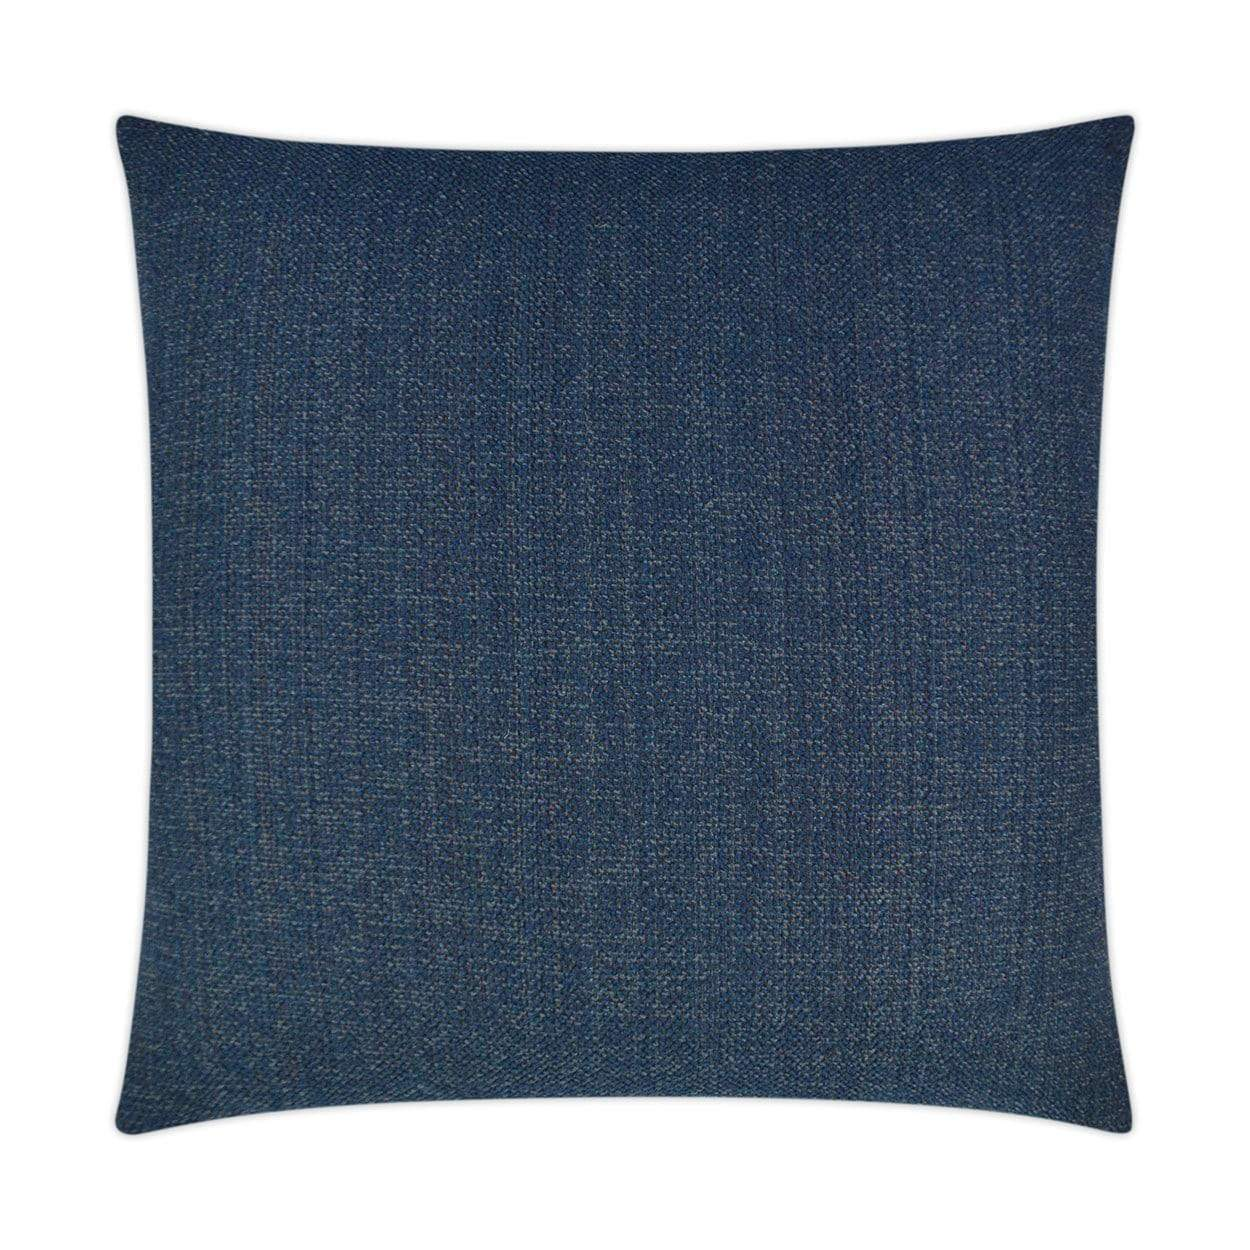 D.V. Kap D.V. Kap Wellford Pillow - Available in 4 Colors Blue 3330-B